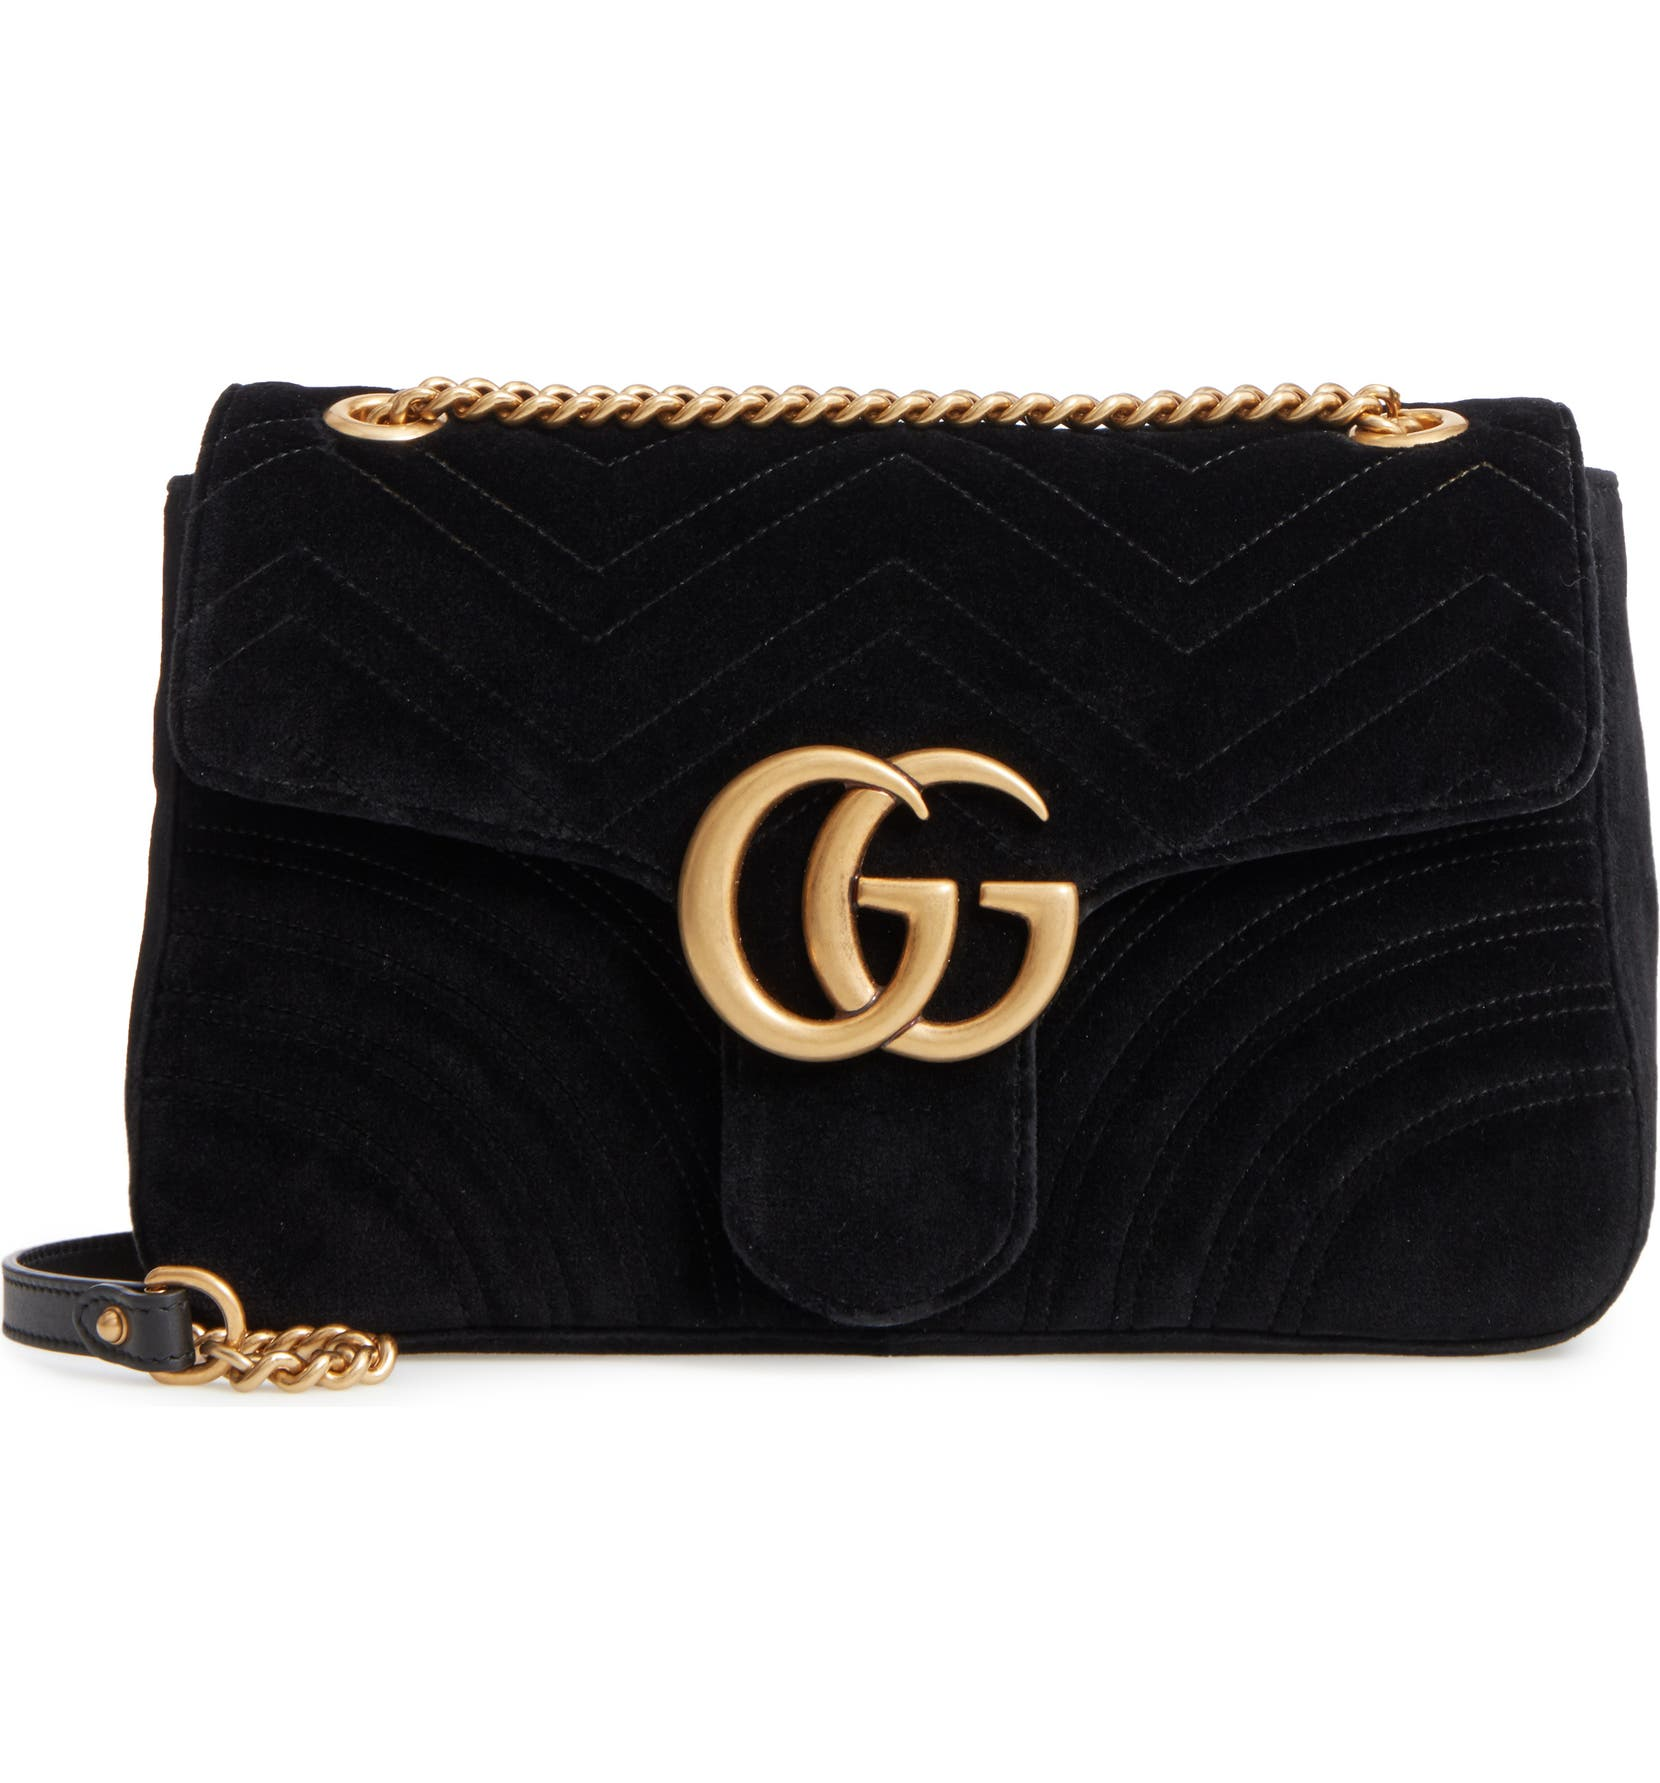 446c9e9bbdc Gucci Medium GG Marmont 2.0 Matelassé Velvet Shoulder Bag